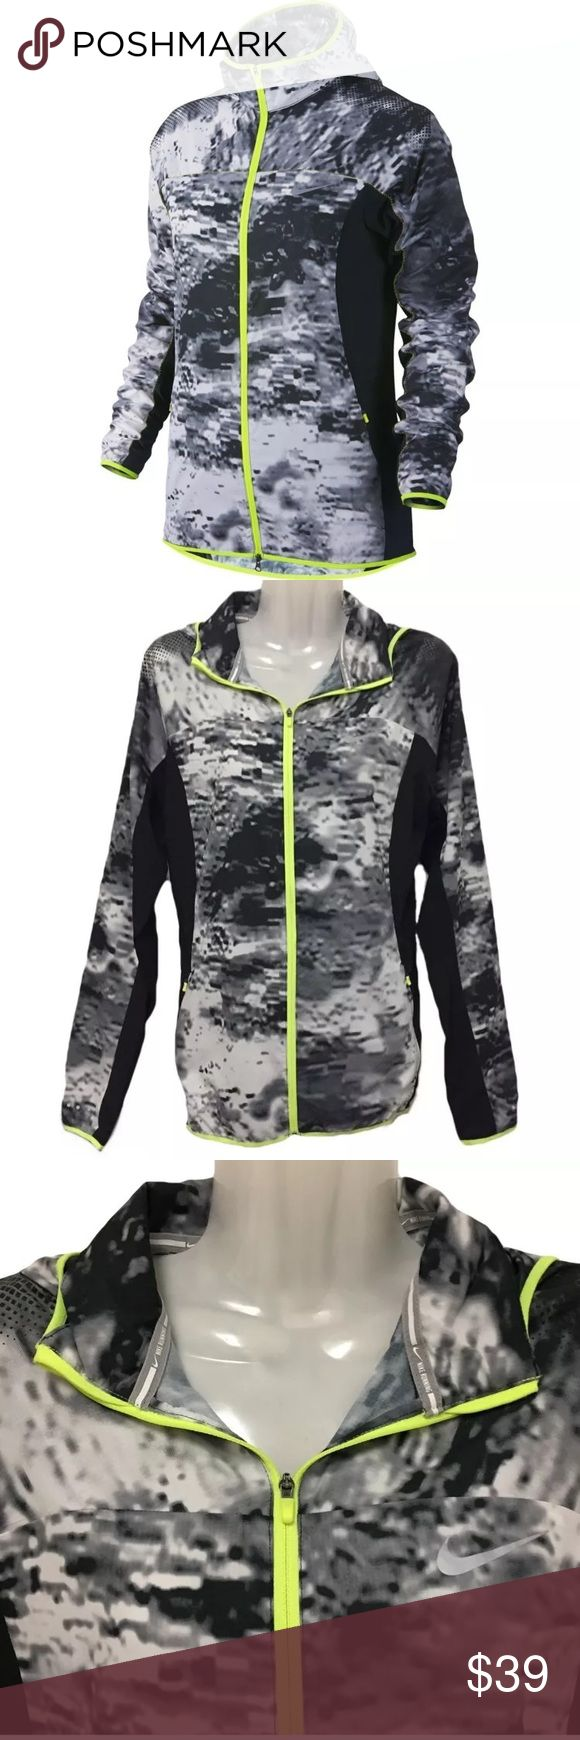 """Nike M Packable Running Trail Kiger Jacket Jacket is """"like new"""" condition. Made of SUPER lightweight ripstop material and Dri-FIT fabric for wind resistance to keep you cool and dry. Features Zippered pockets, full zip in contrast neon yellow color. Stretch panels at sides and under the arms for non restrictive comfort. Reflectors on arm, lower back and Nike logo on front. You can pack the entire jacket into one of the pockets for custom carrying.  Approximate Measurements: Chest: 18""""…"""